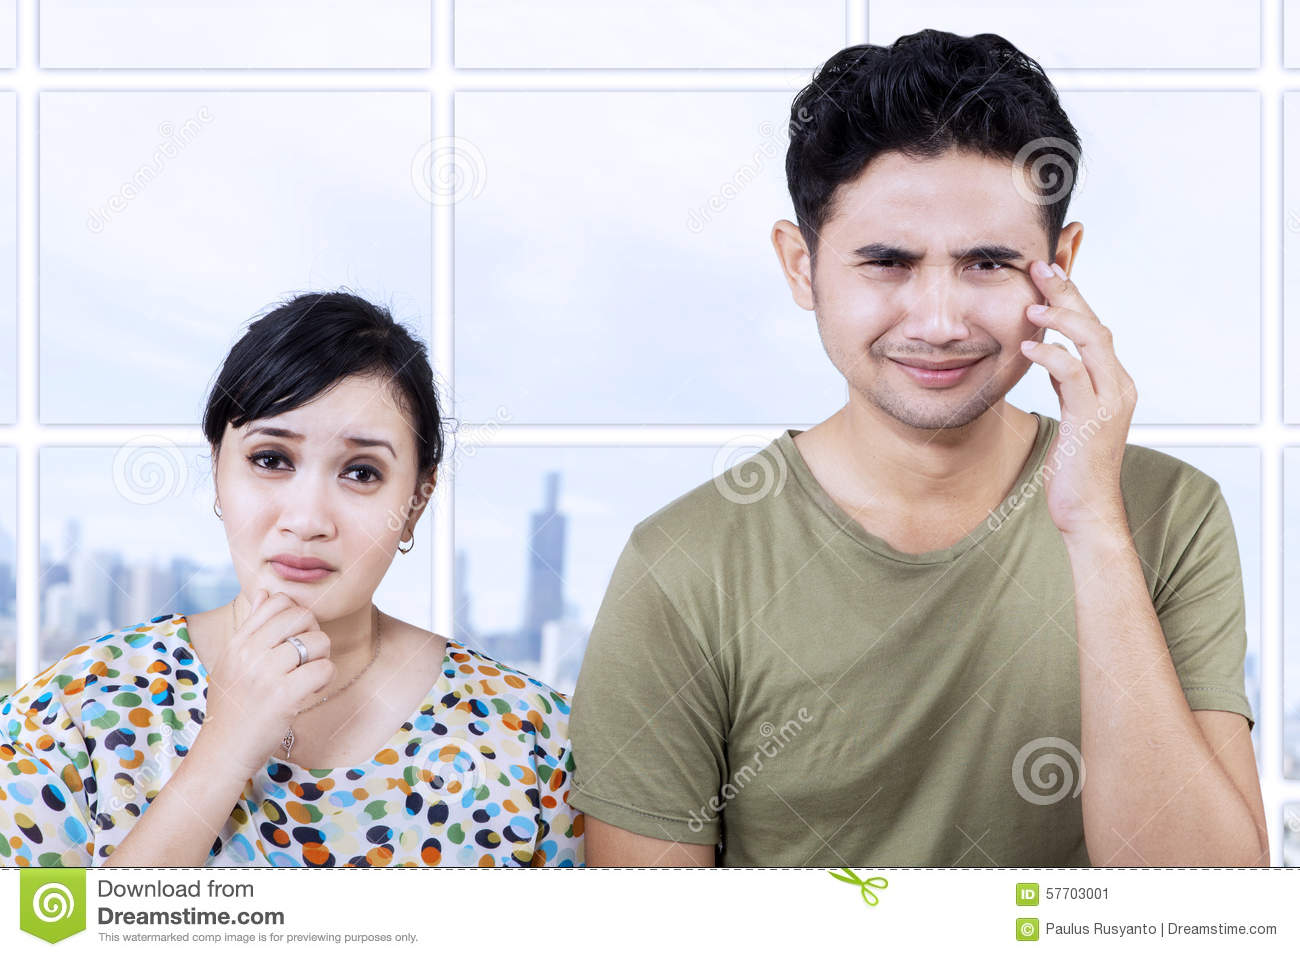 Sad couple expression in apartment